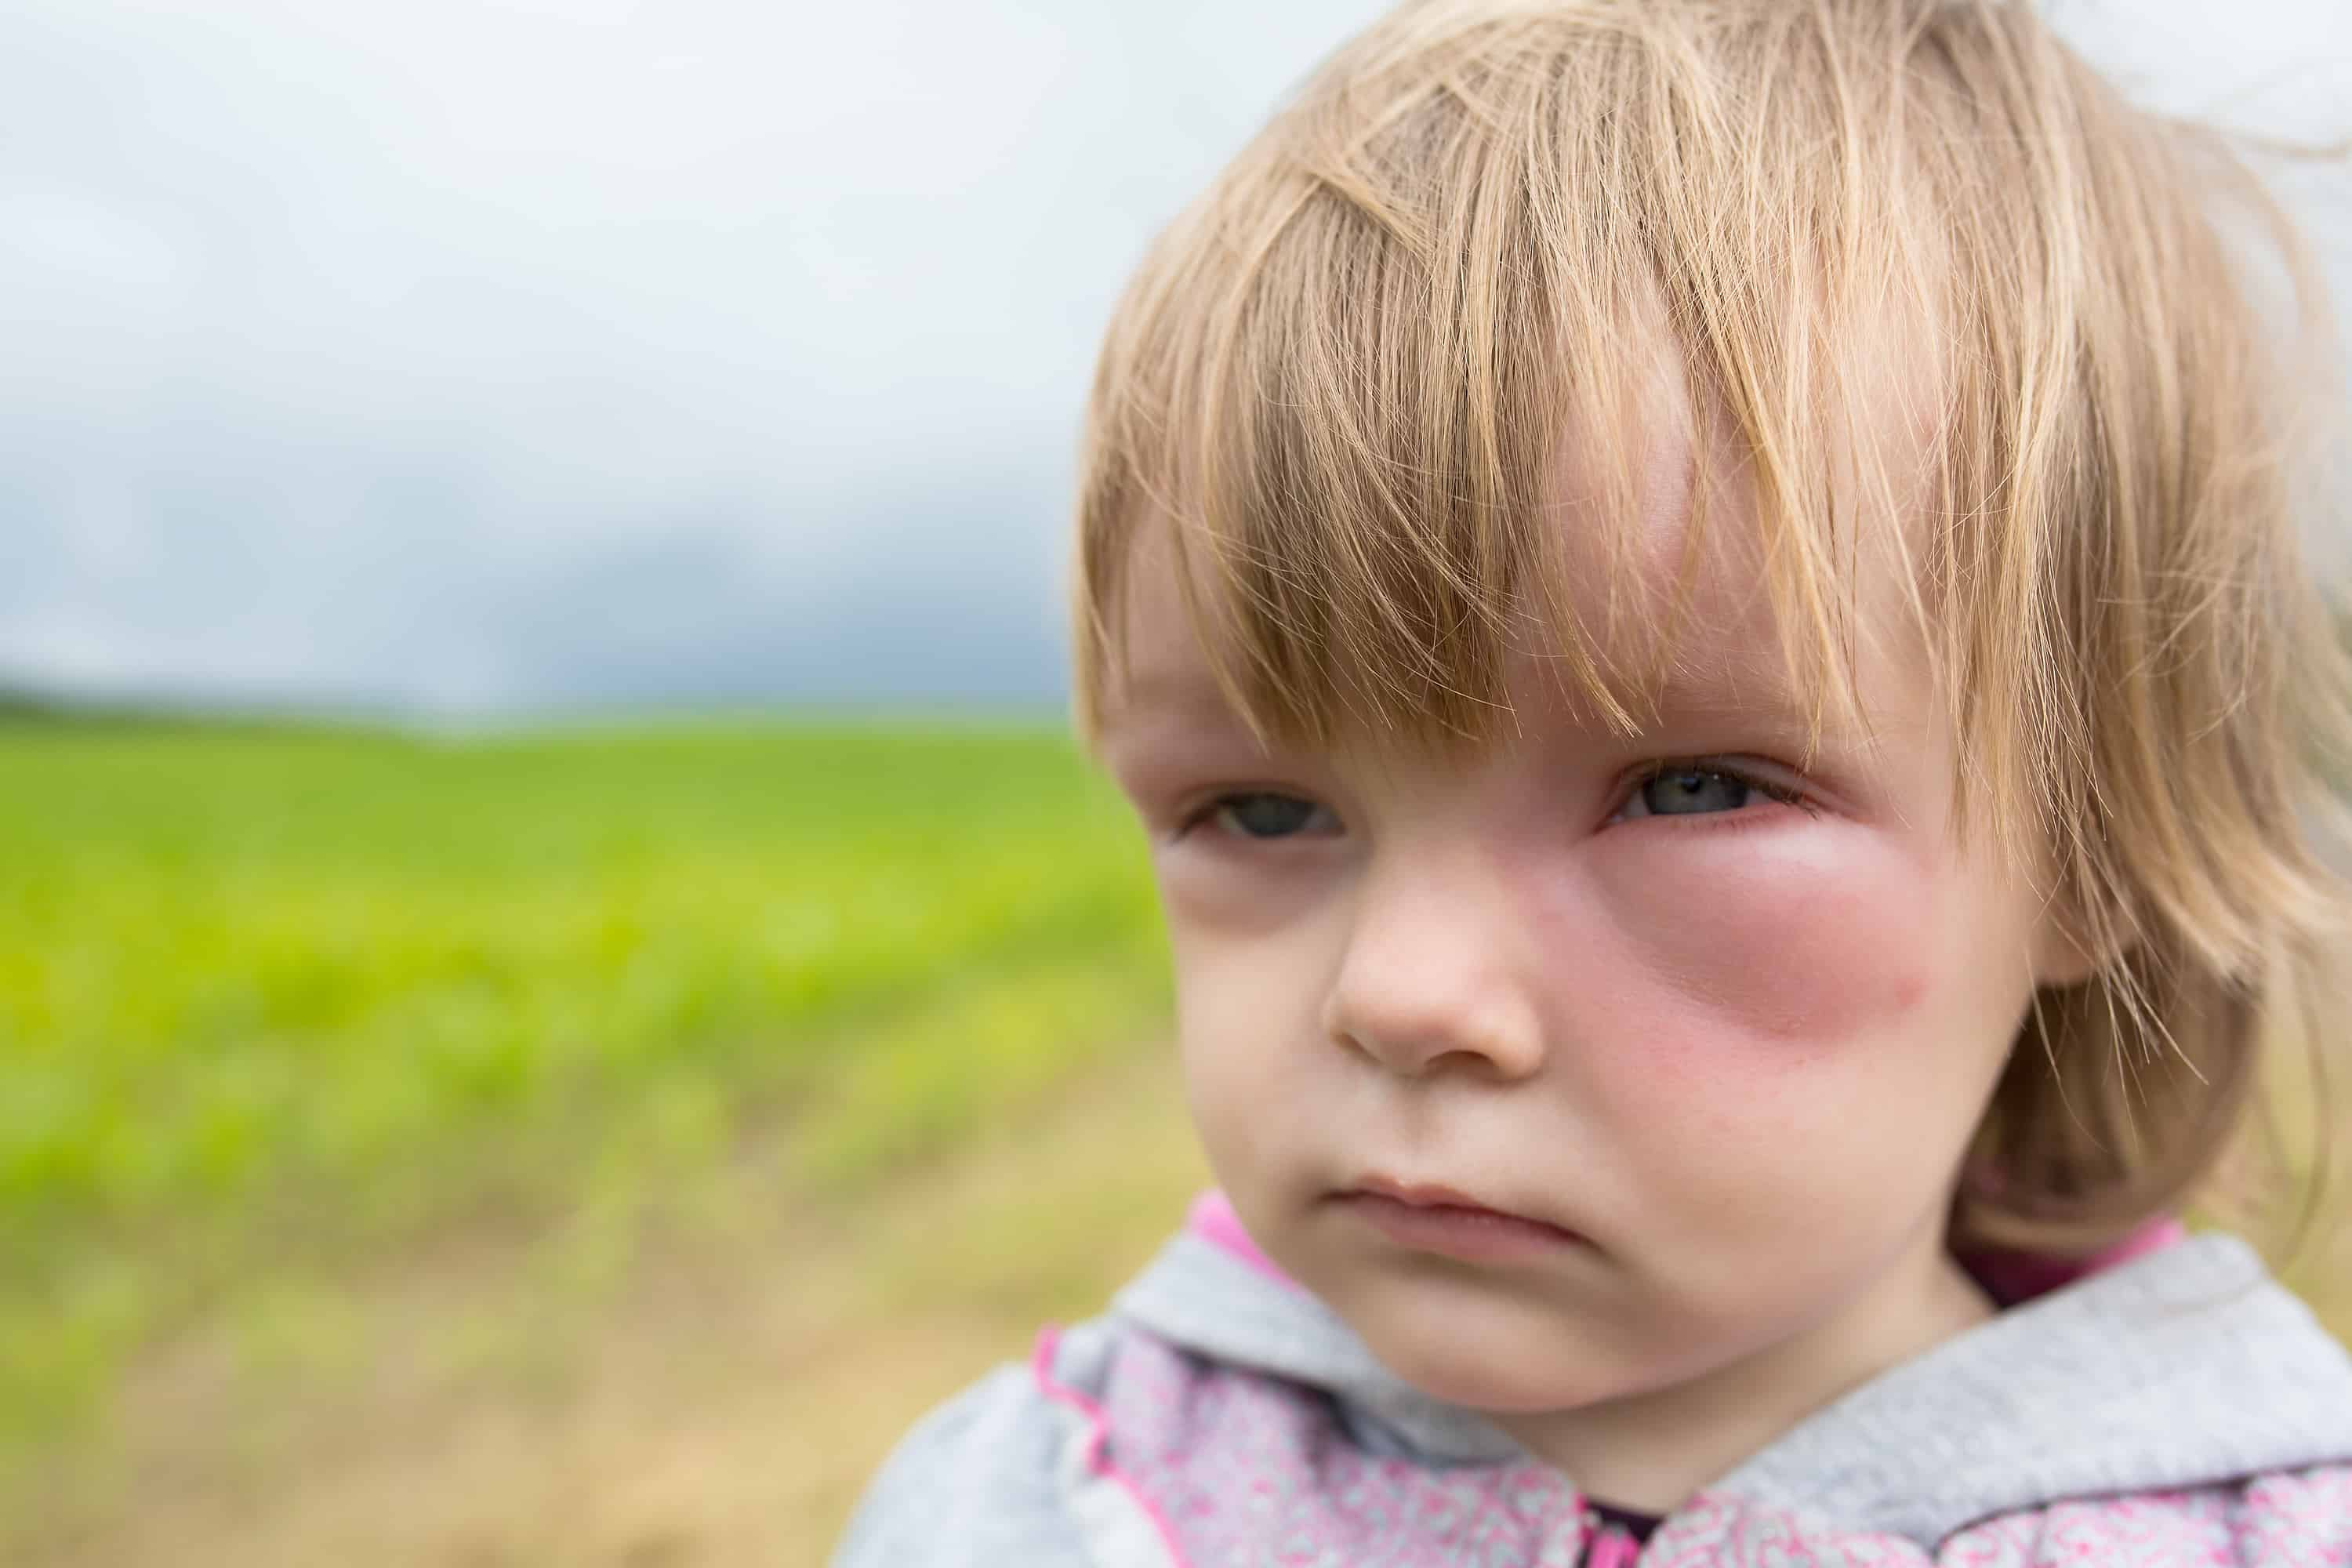 Severe food allergy reactions are scary in children.